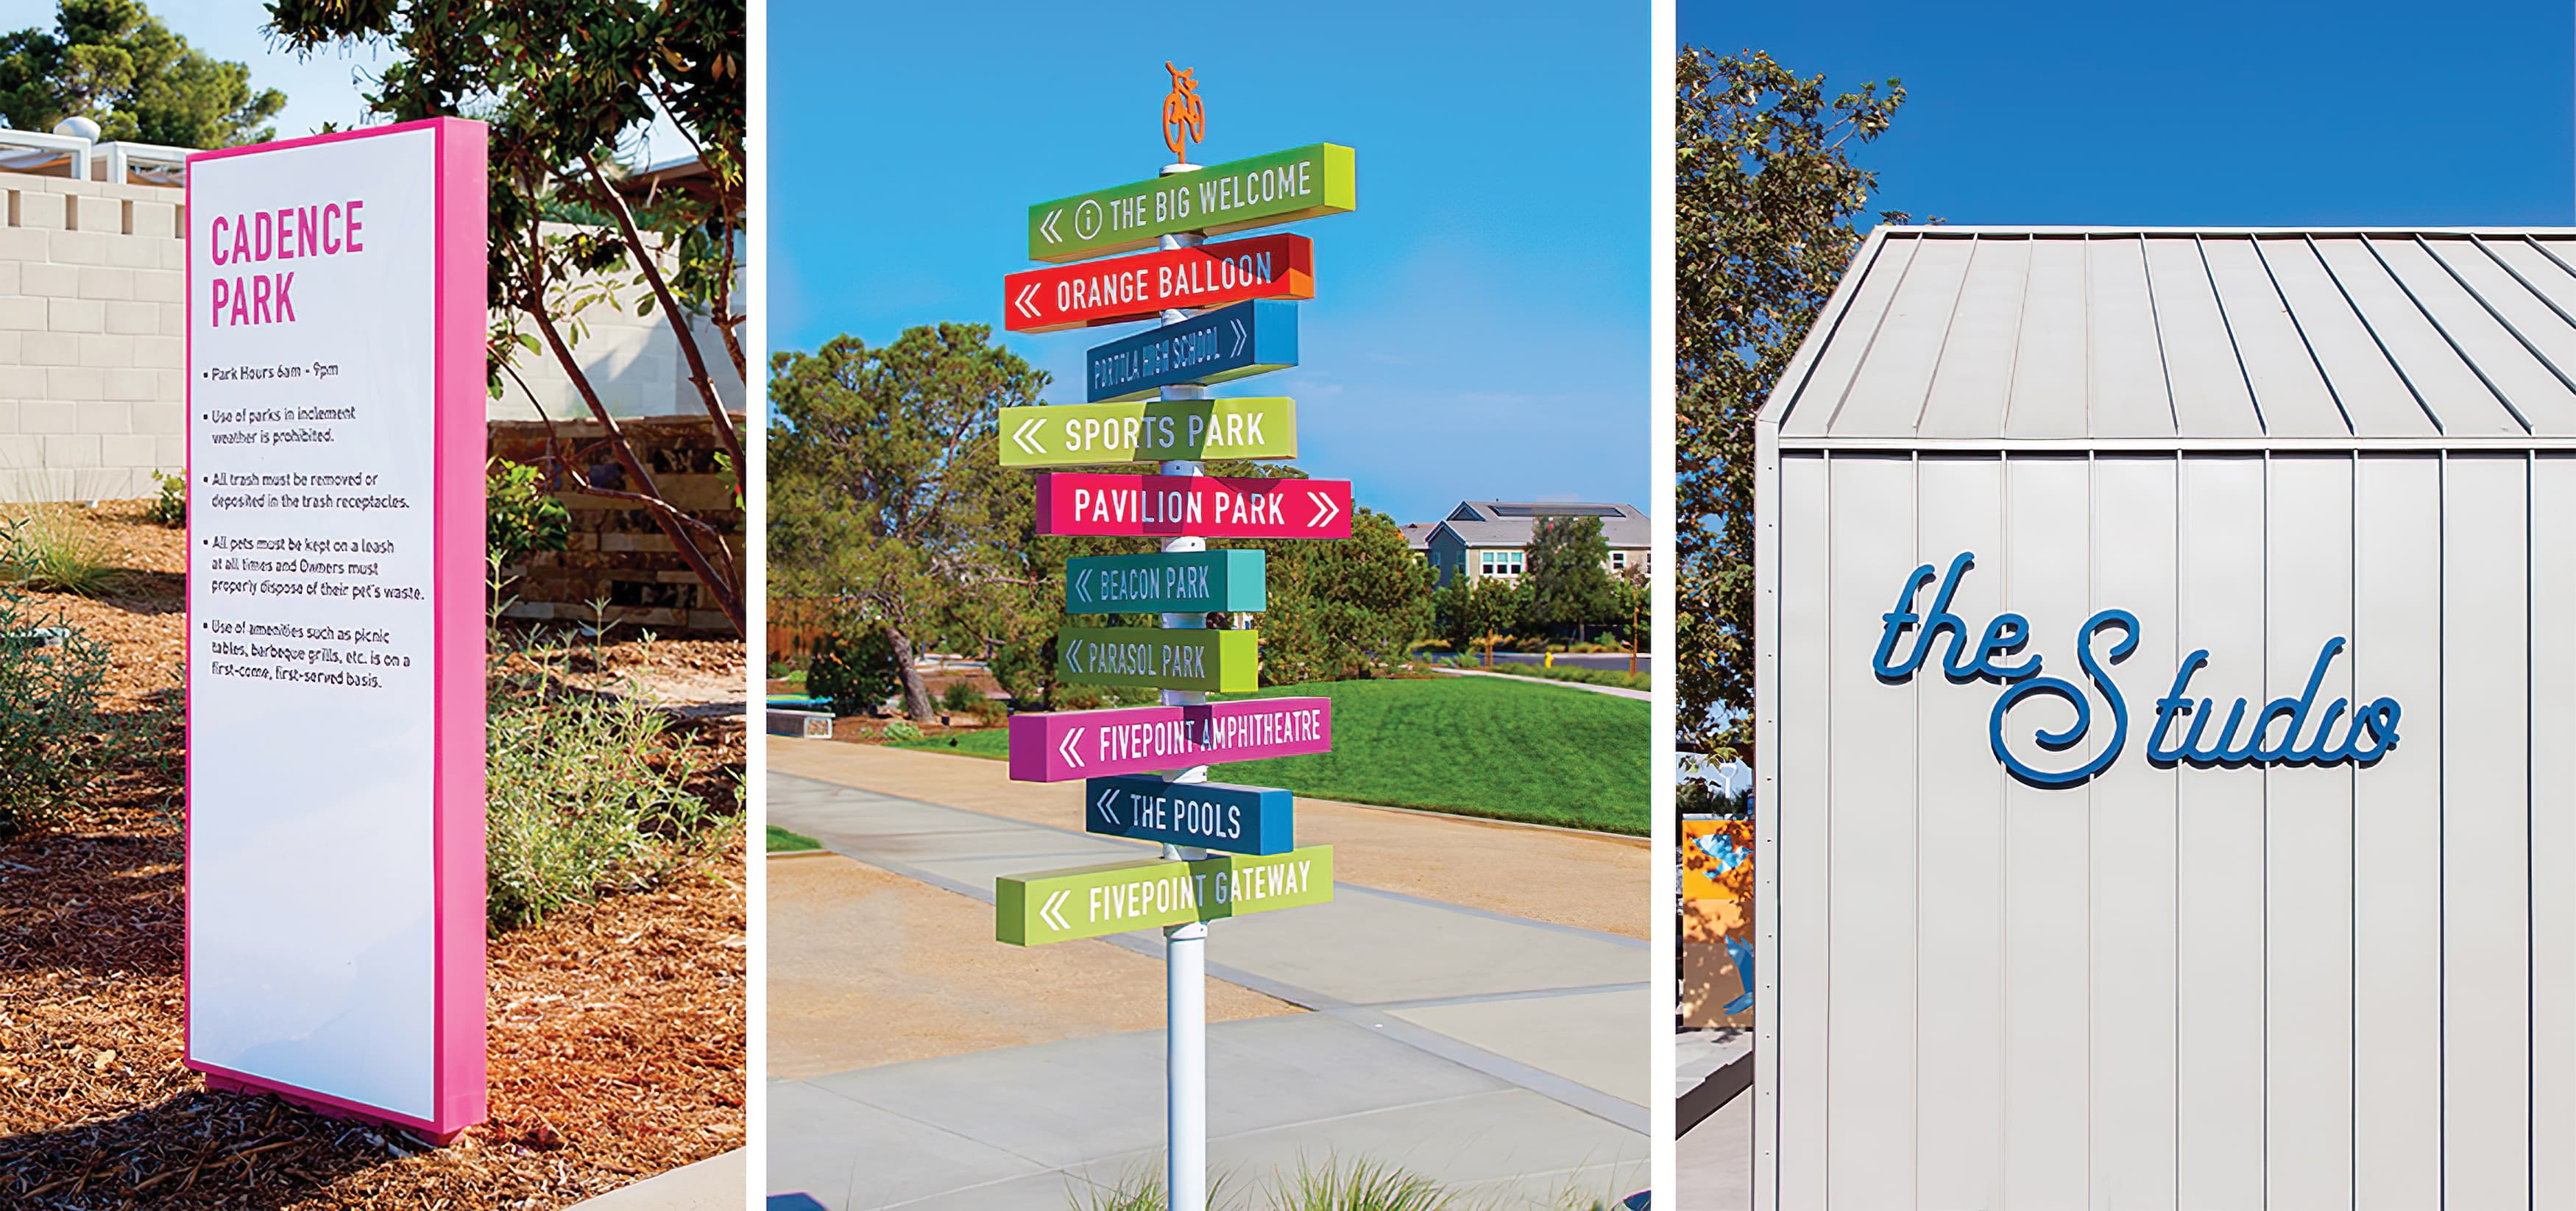 Cadence Park, a park within the Great Park Neighborhood in Irvine, California. RSM Design prepared Wayfinding Signage and Environmental Graphics. Signage Design. Directional Signage. Park Signage.